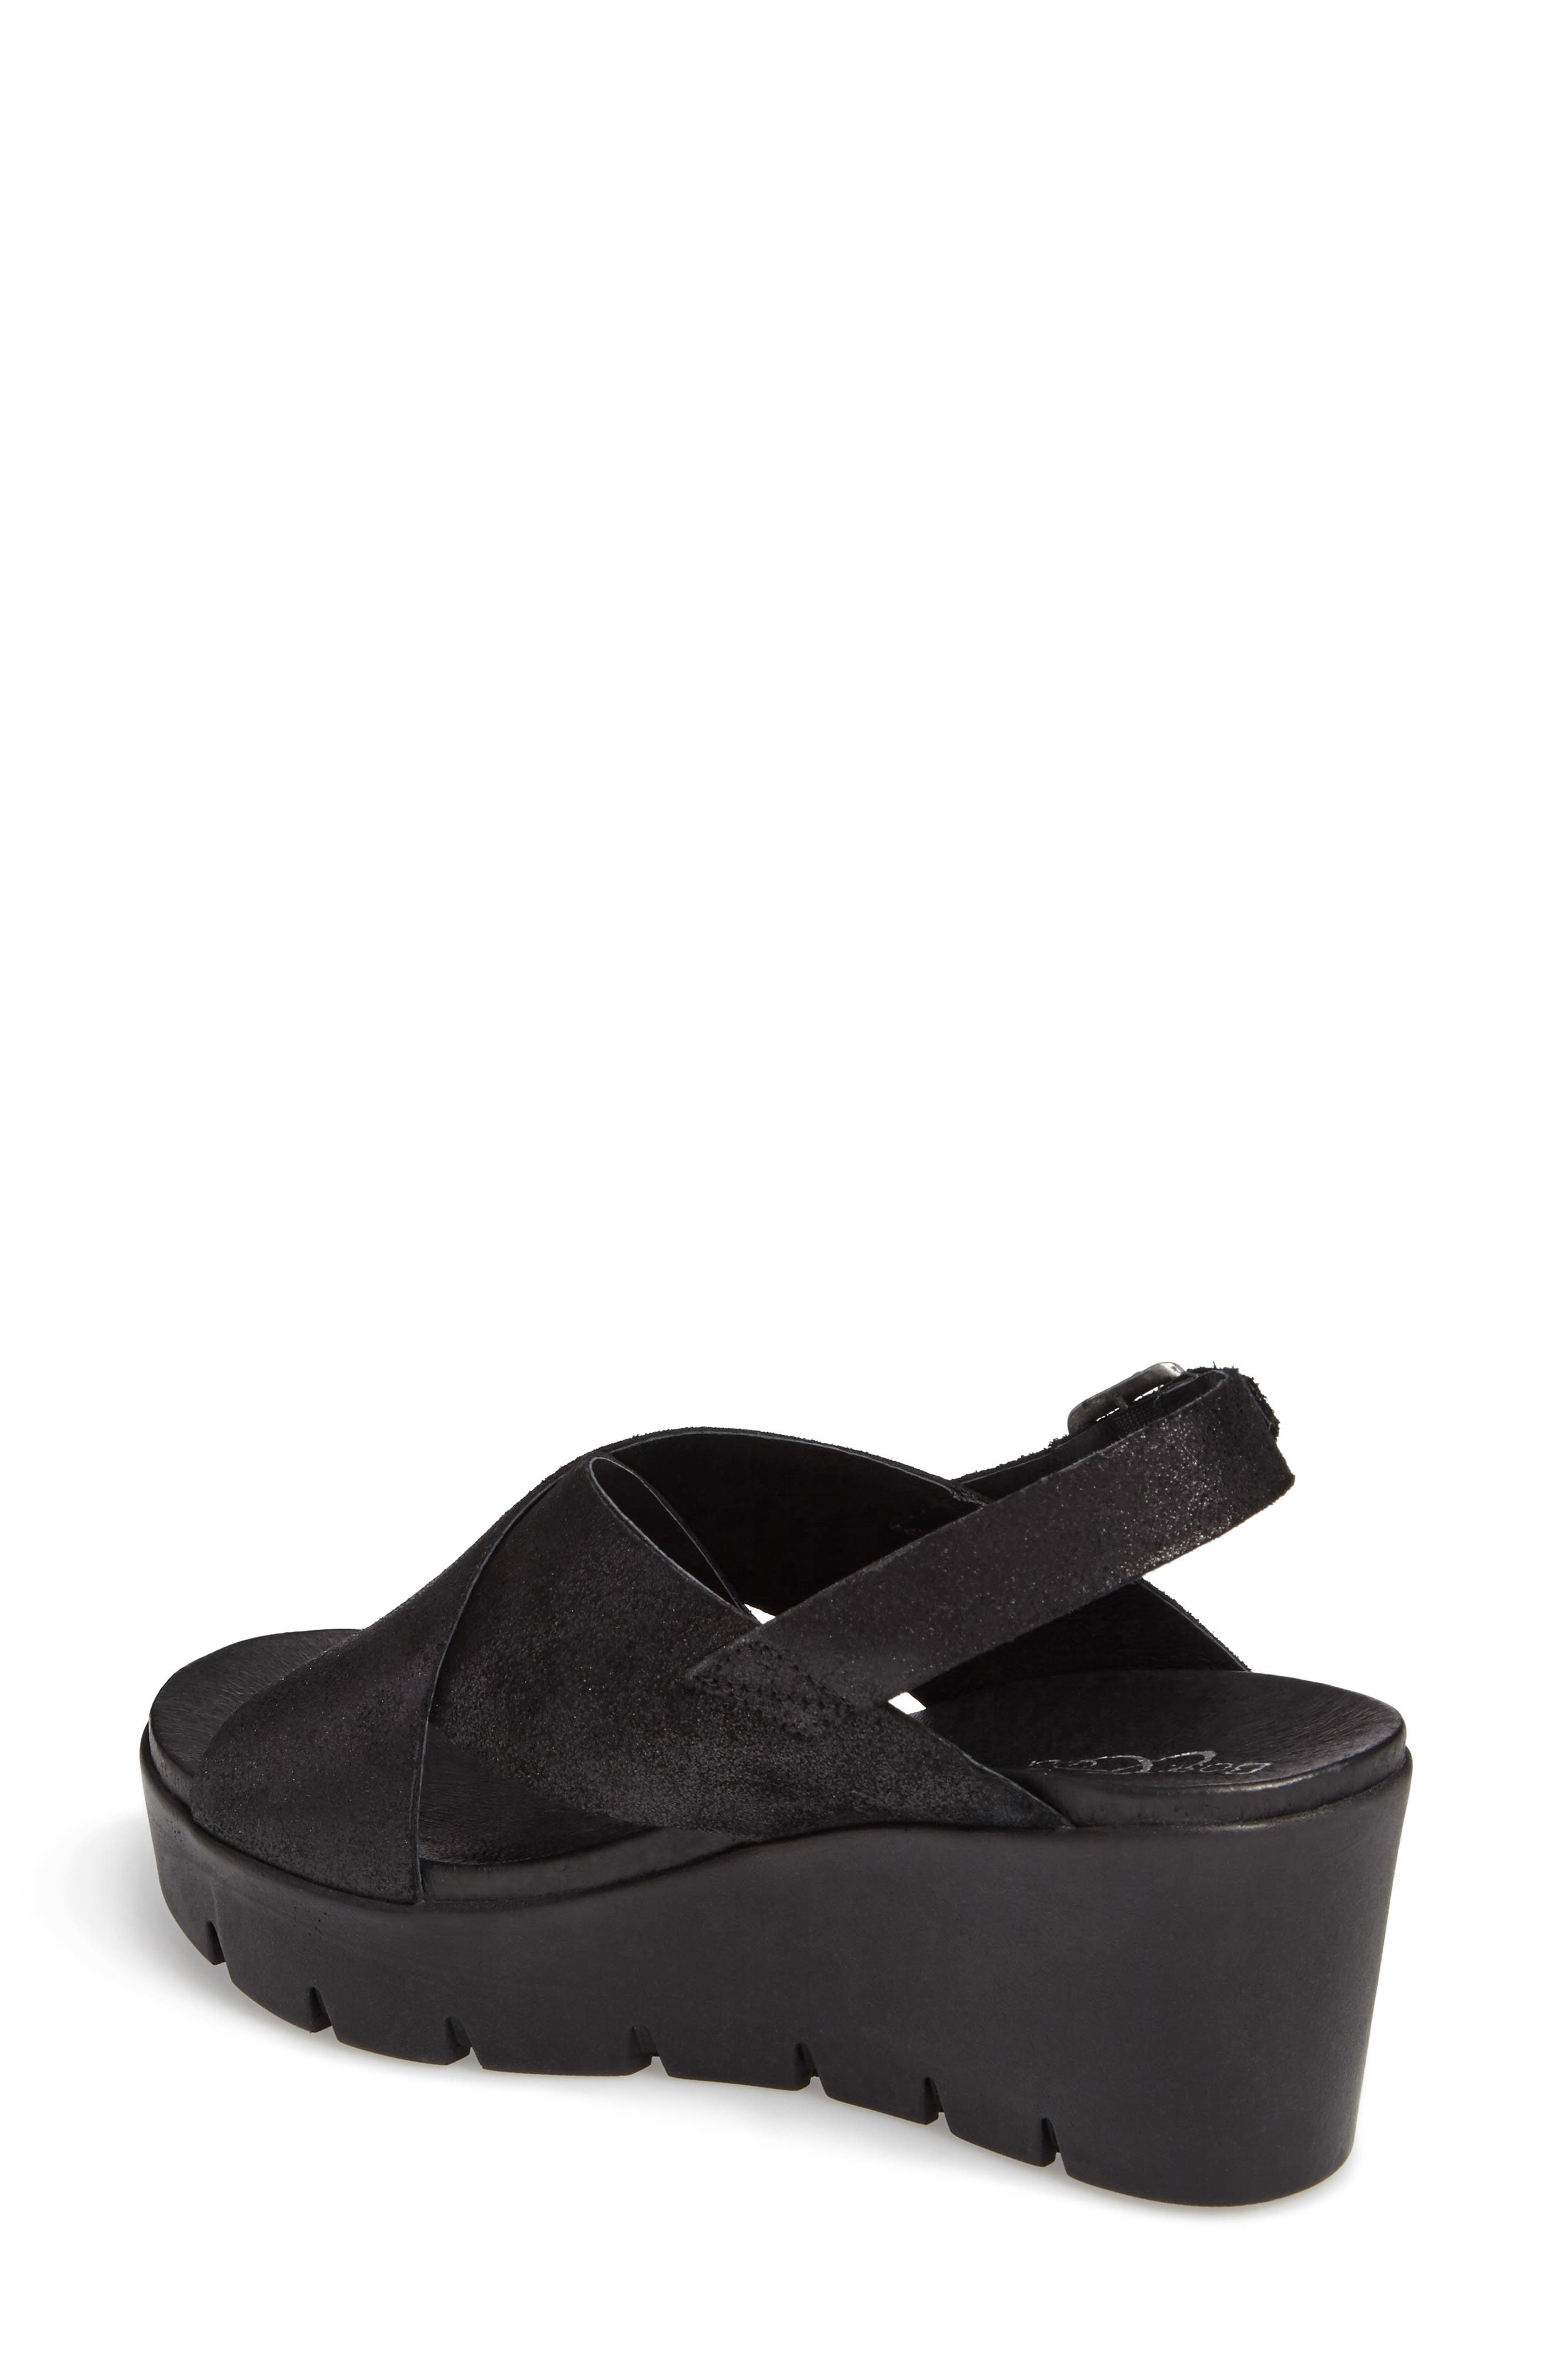 Payton Platform Wedge Sandal,                             Alternate thumbnail 2, color,                             001